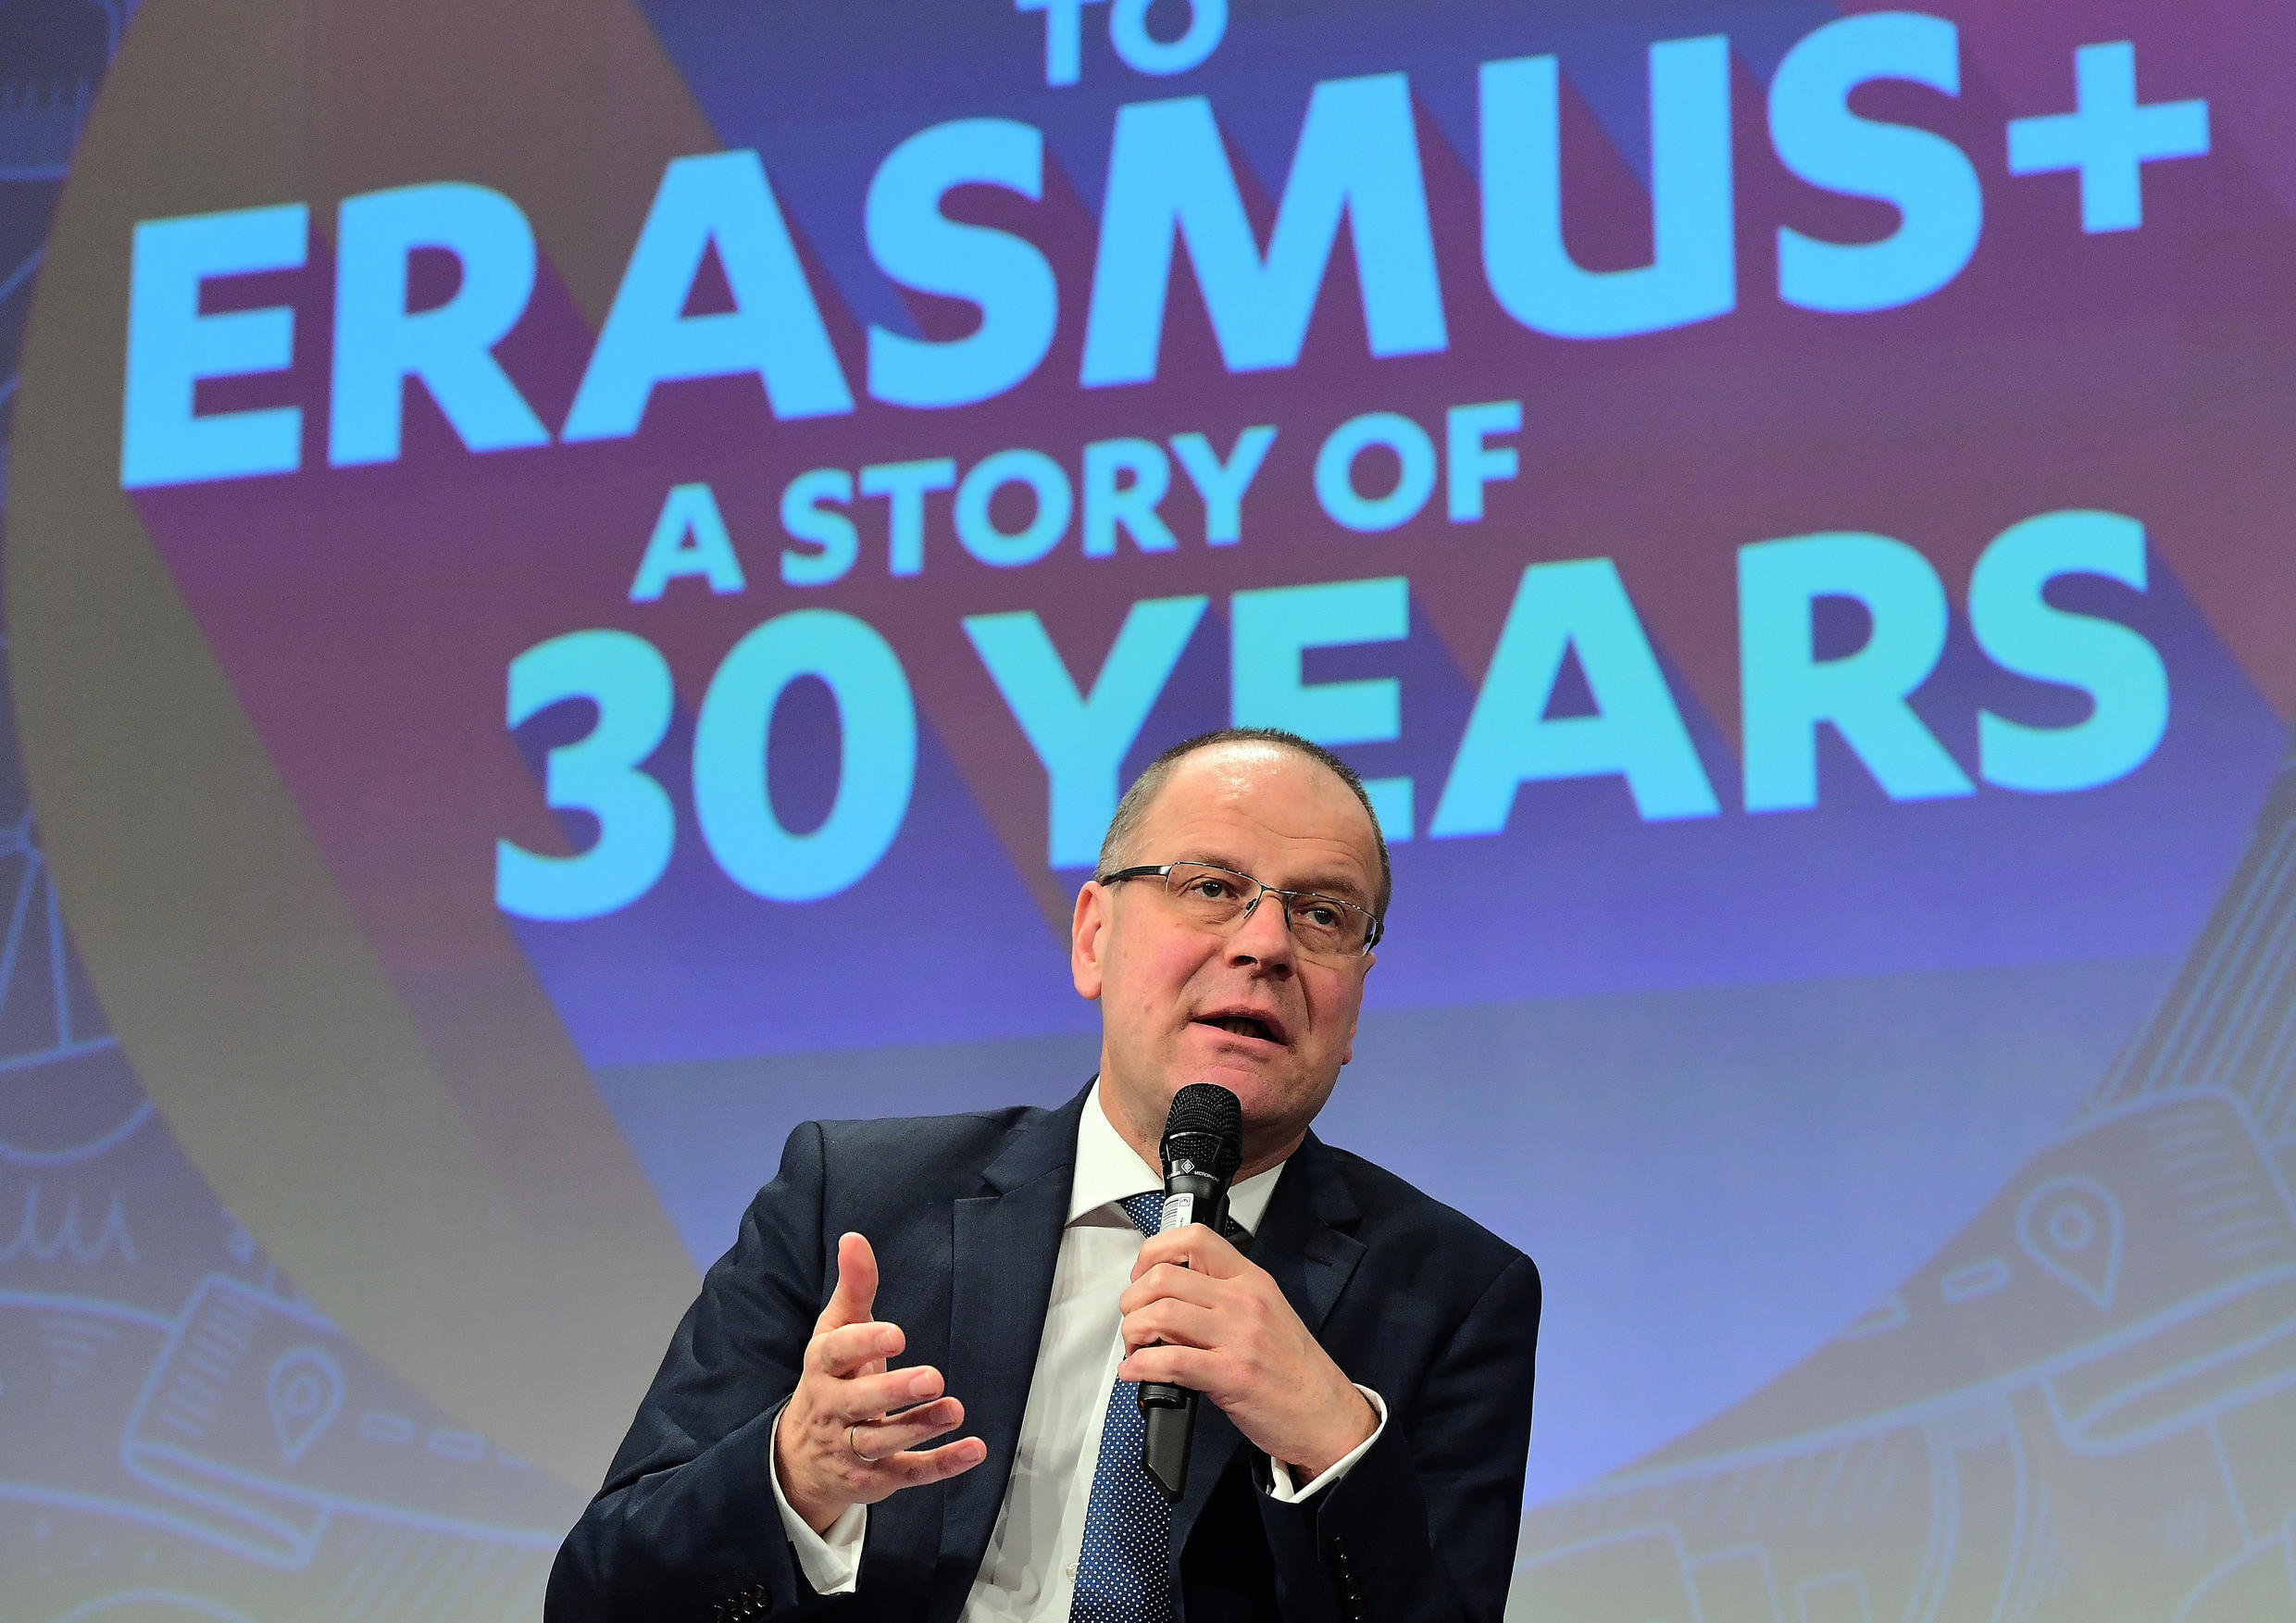 European Commissioner for Education, Culture, Youth and Sport Tibor Navracsics addresses a press conference on the 30th anniversary of the Erasmus programme, at the European Commission in Brussels on January 26, 2017.